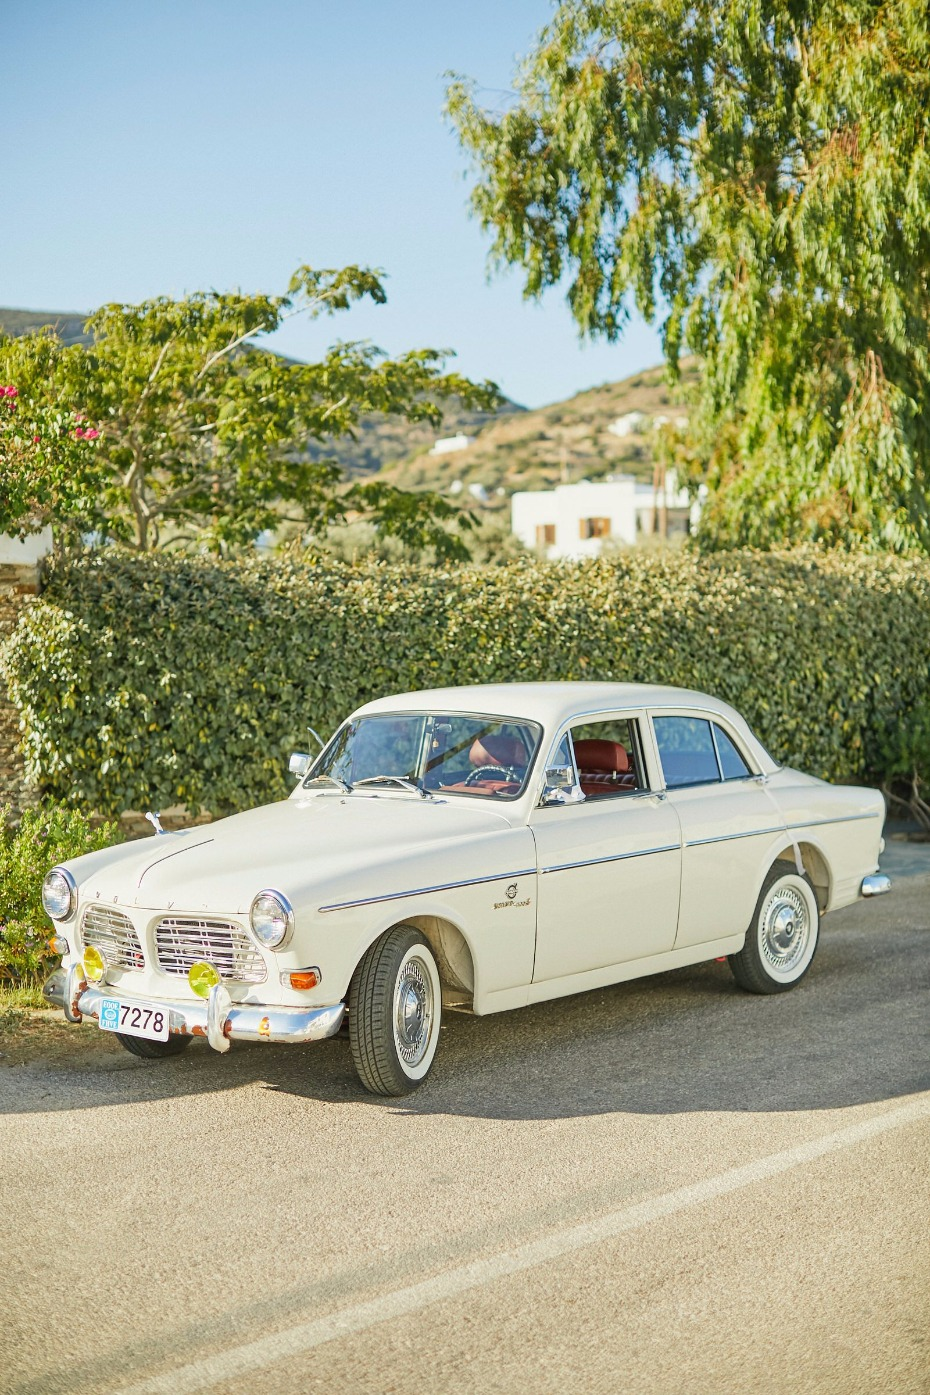 vintage wedding car for the brides ride to the ceremony